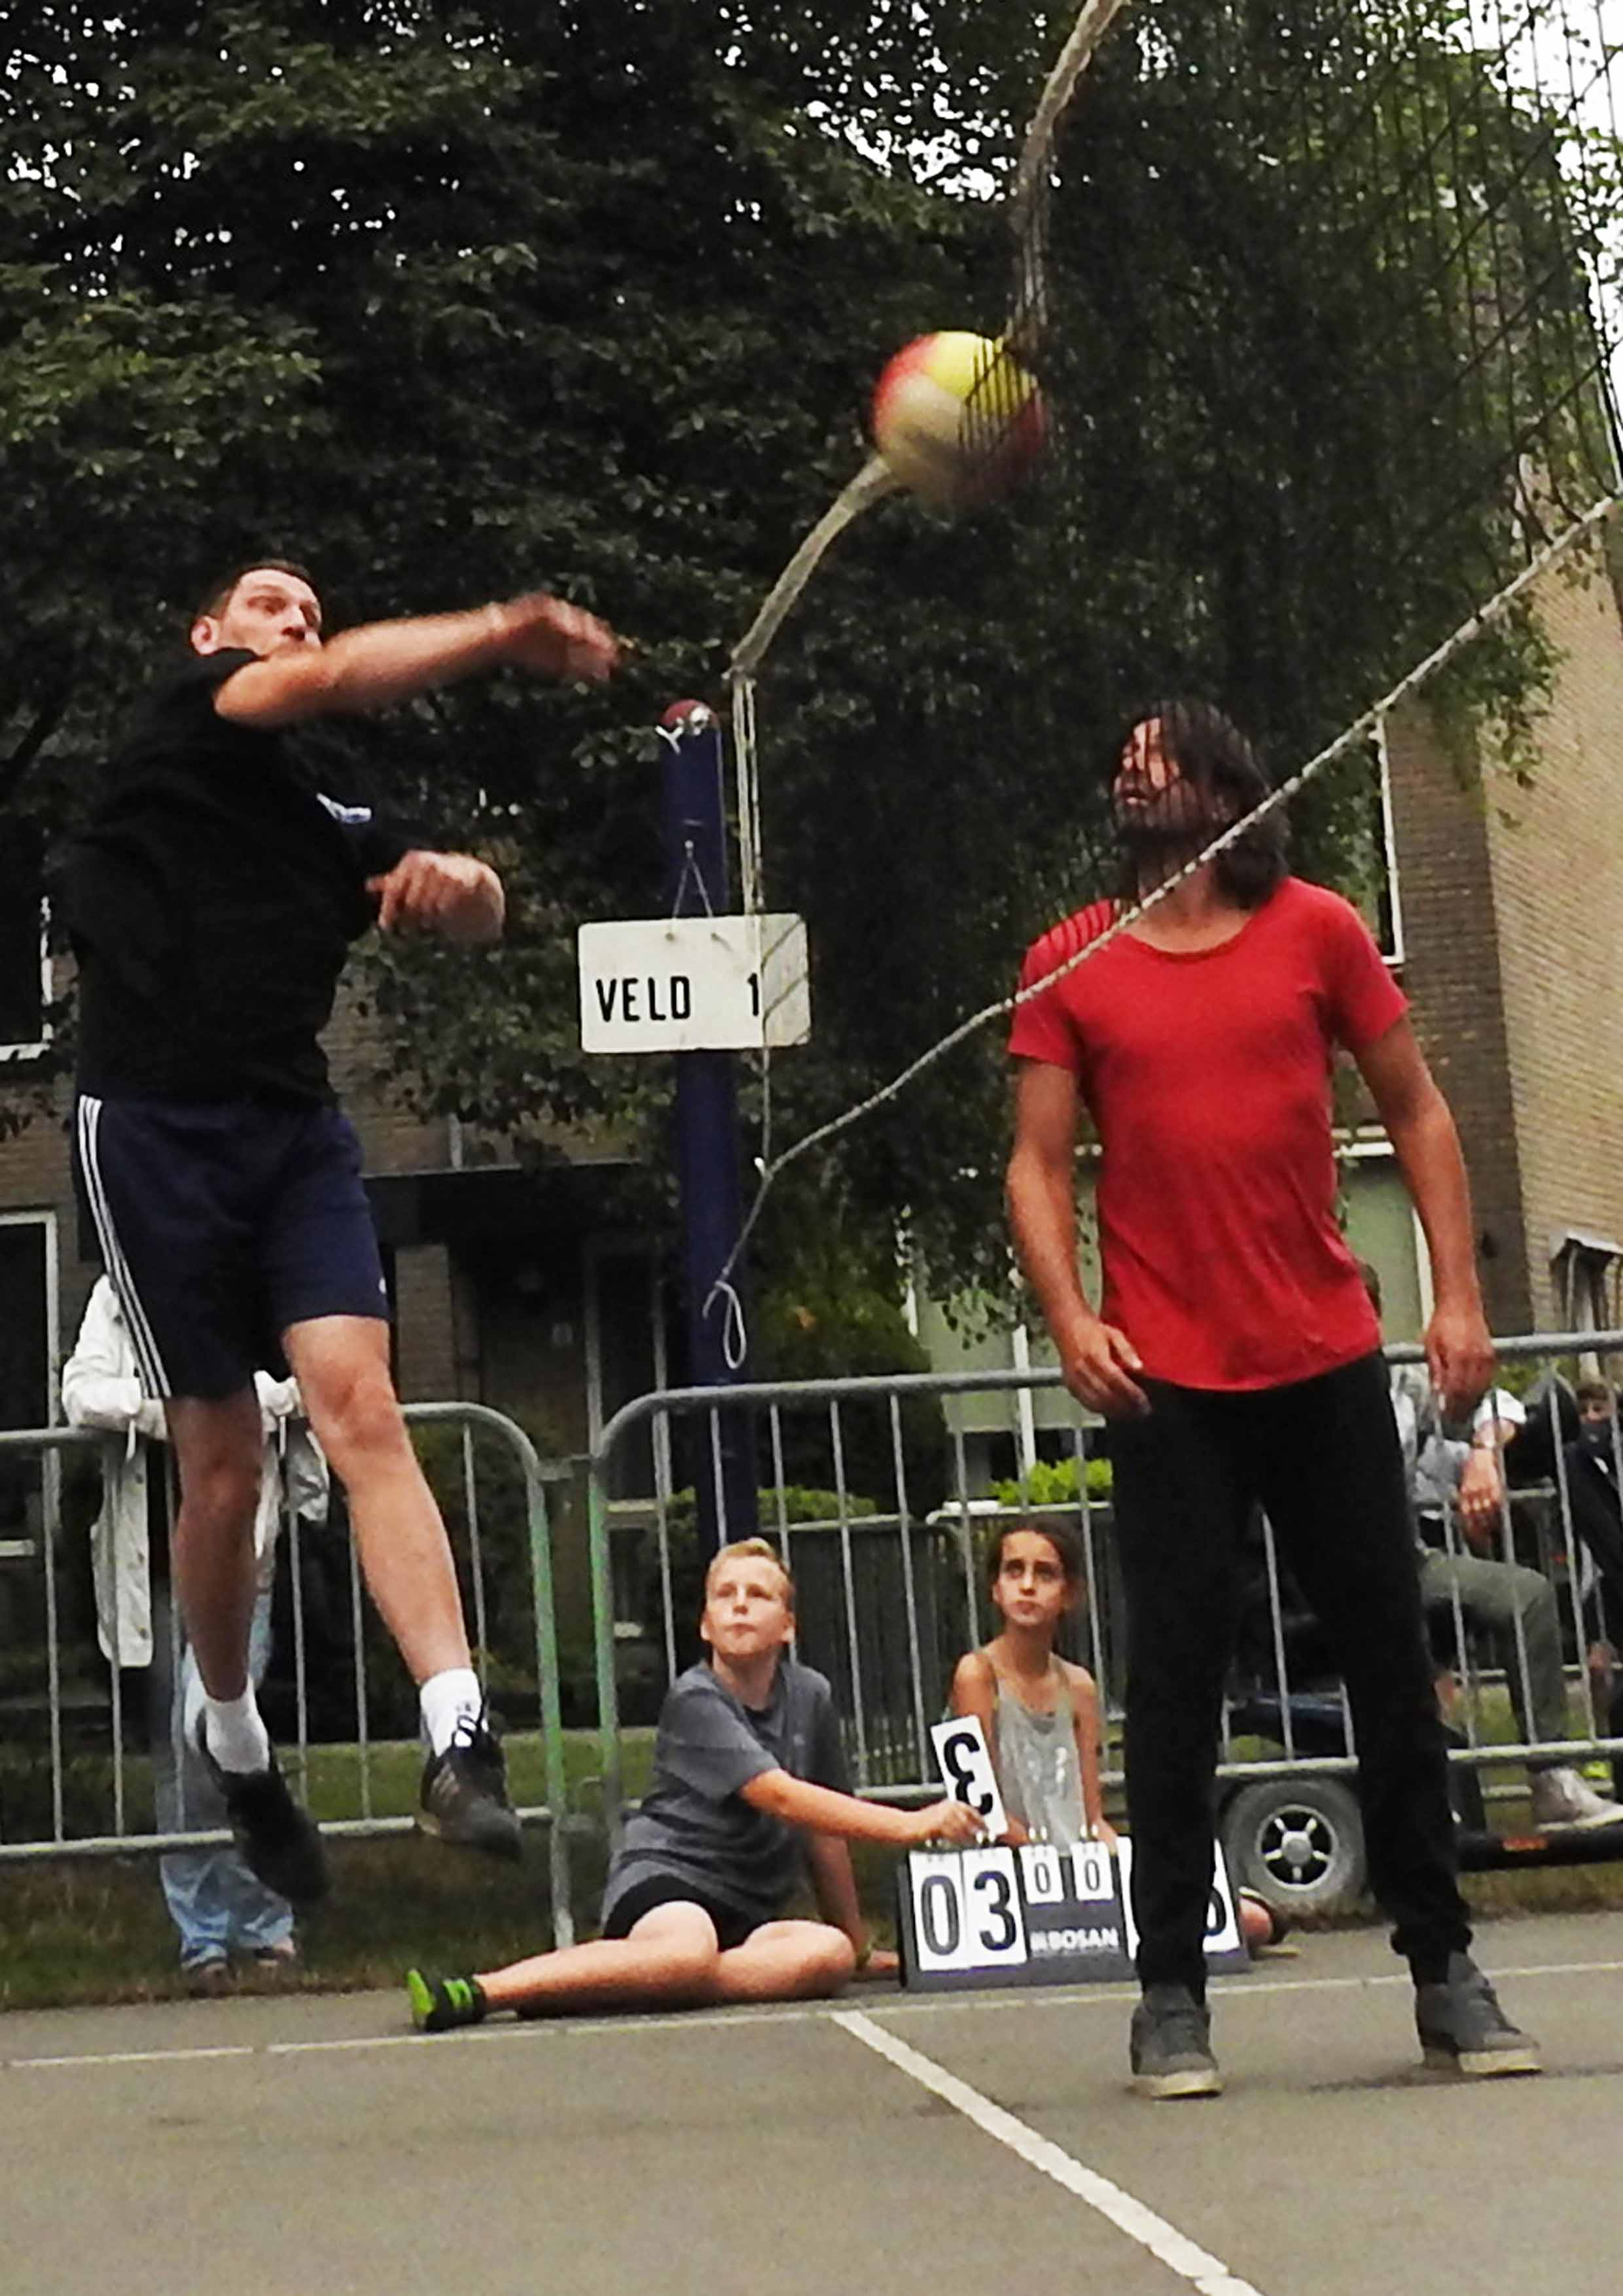 2017-06-29_BB_Straatvolleybal (61)